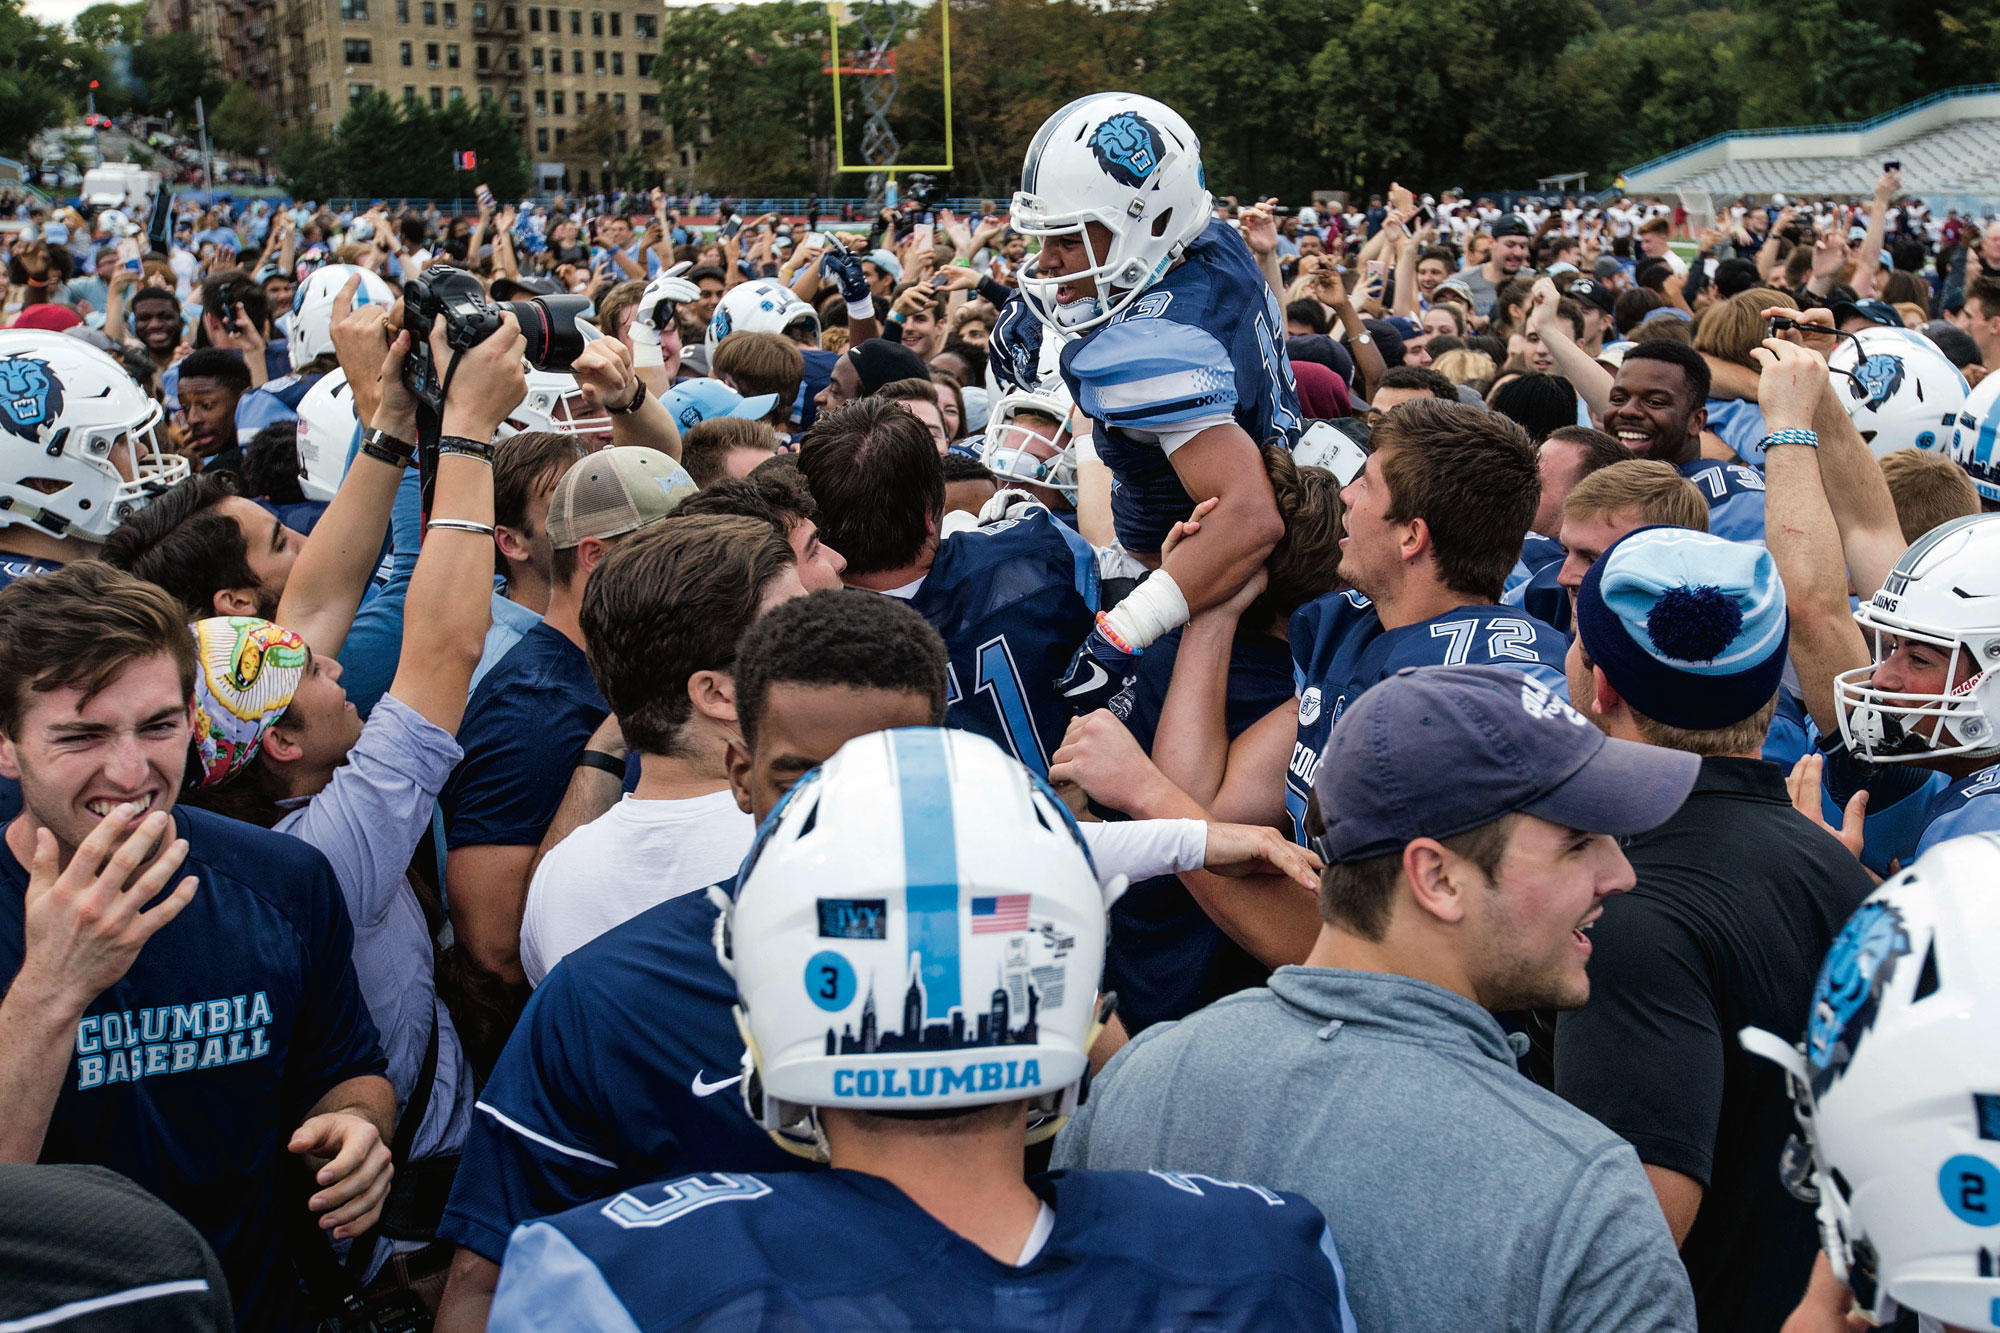 Columbia Lions football team